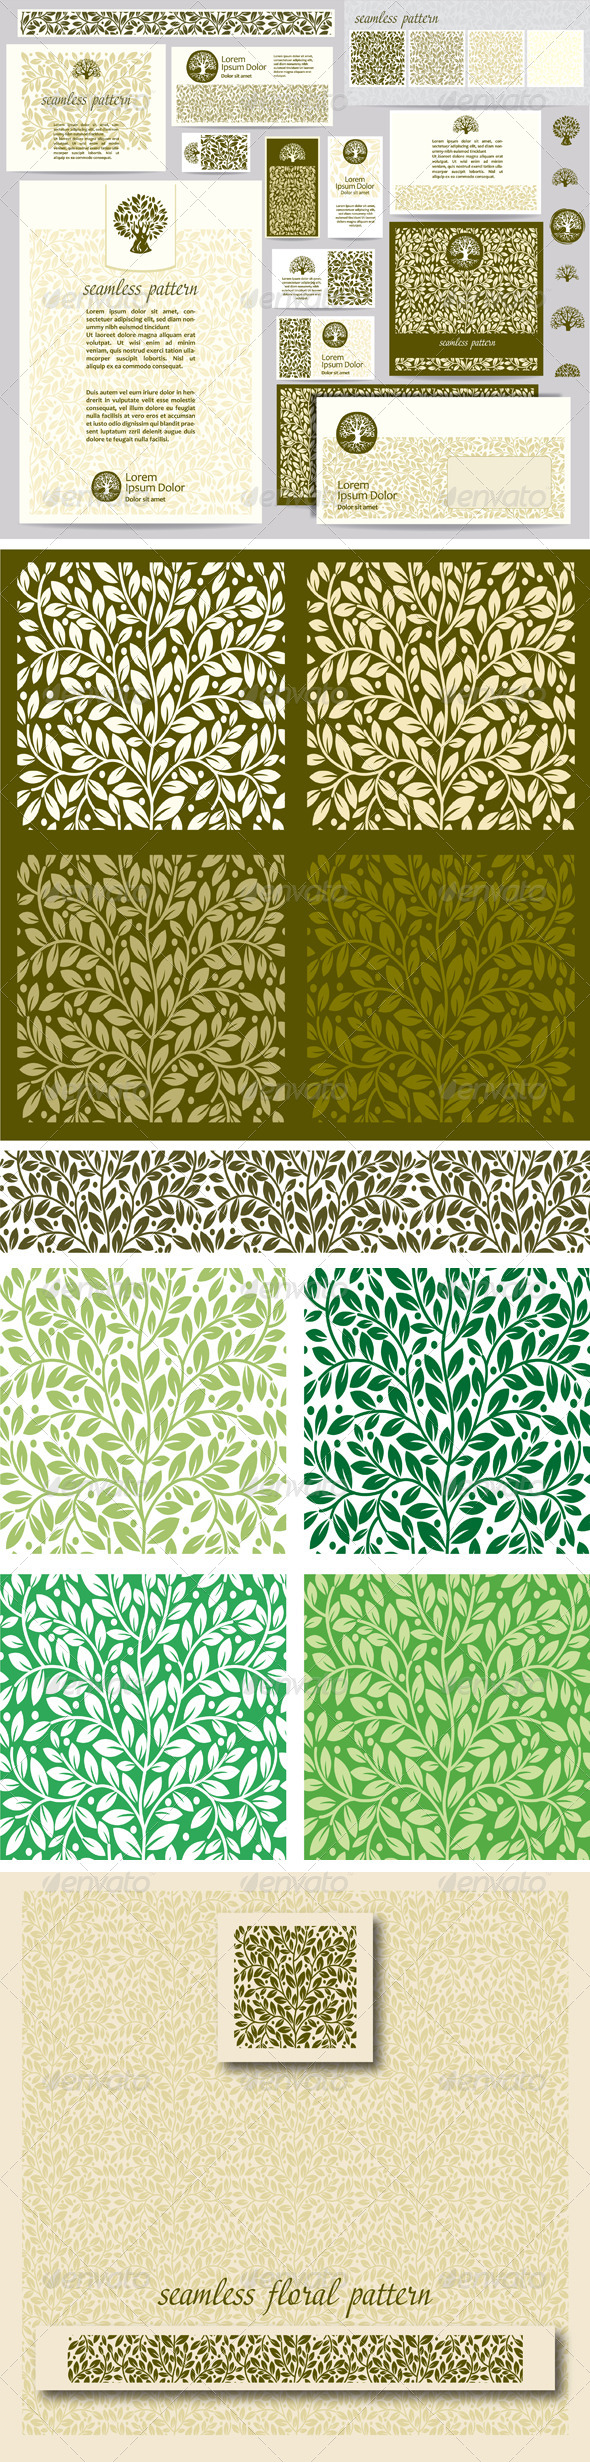 GraphicRiver Identity Template with Leaf Seamless Pattern 7041618